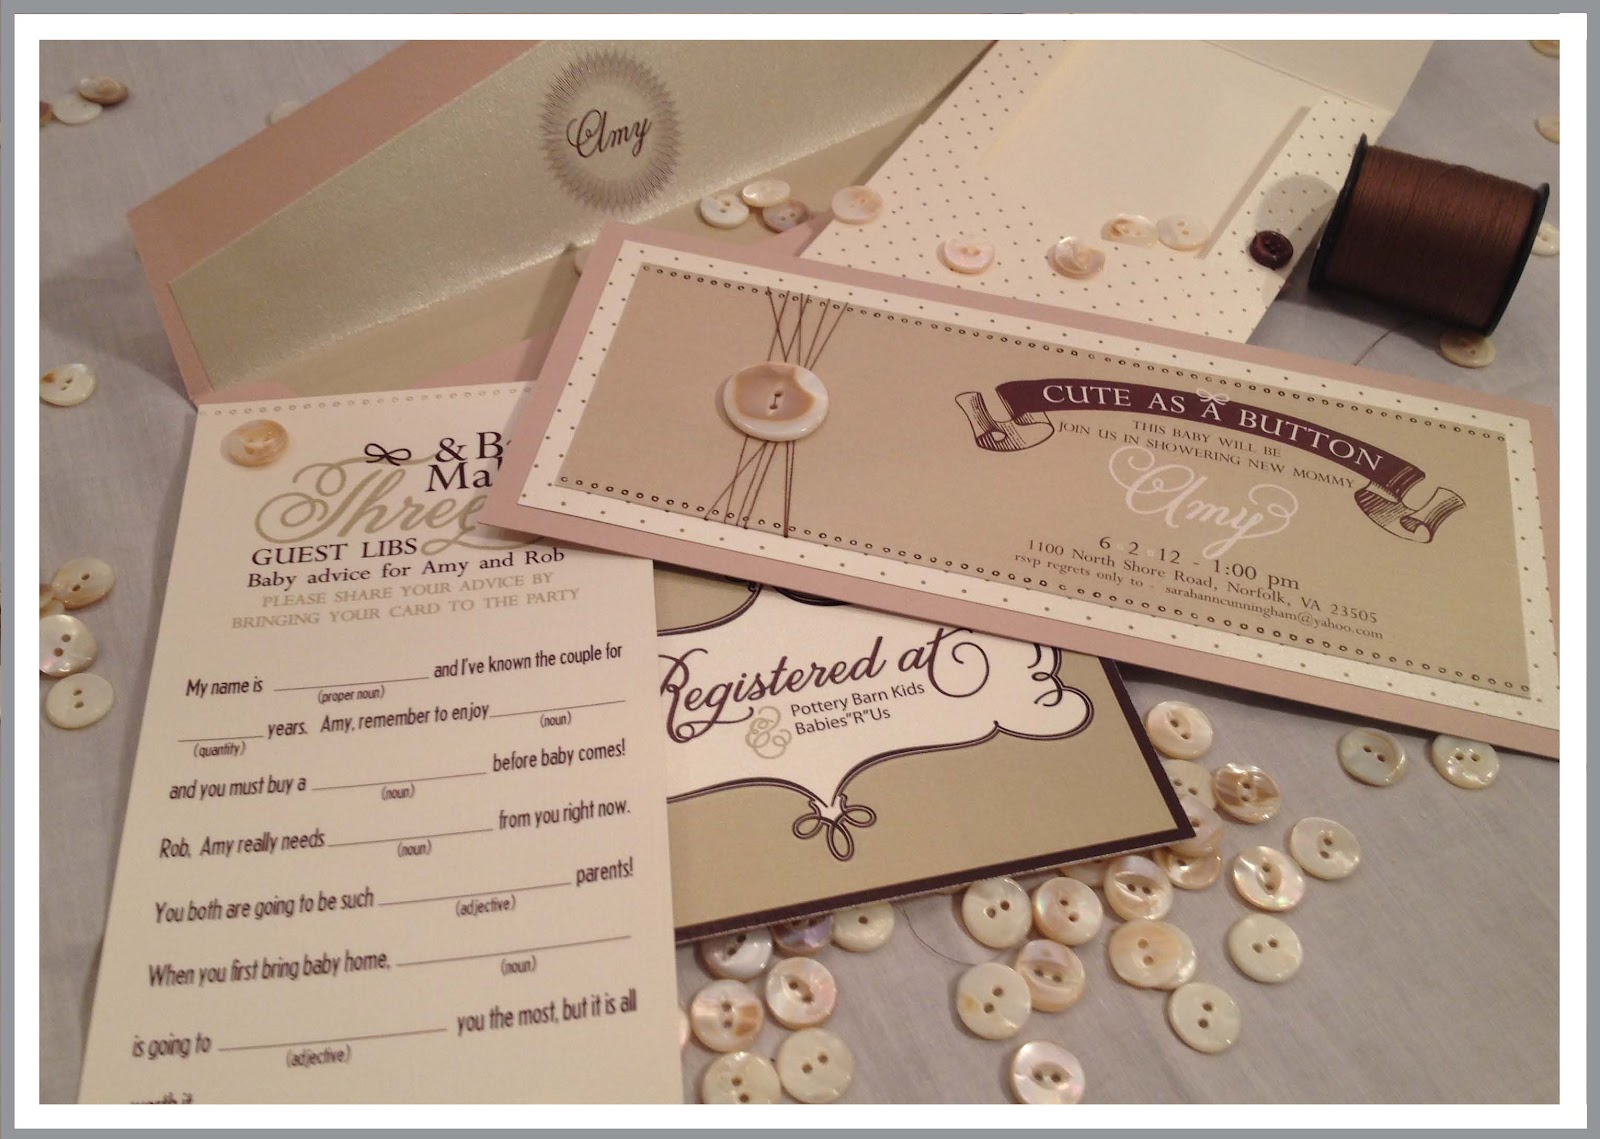 Cute As A Button - Baby Shower Theme | Izzy Designs, LLC